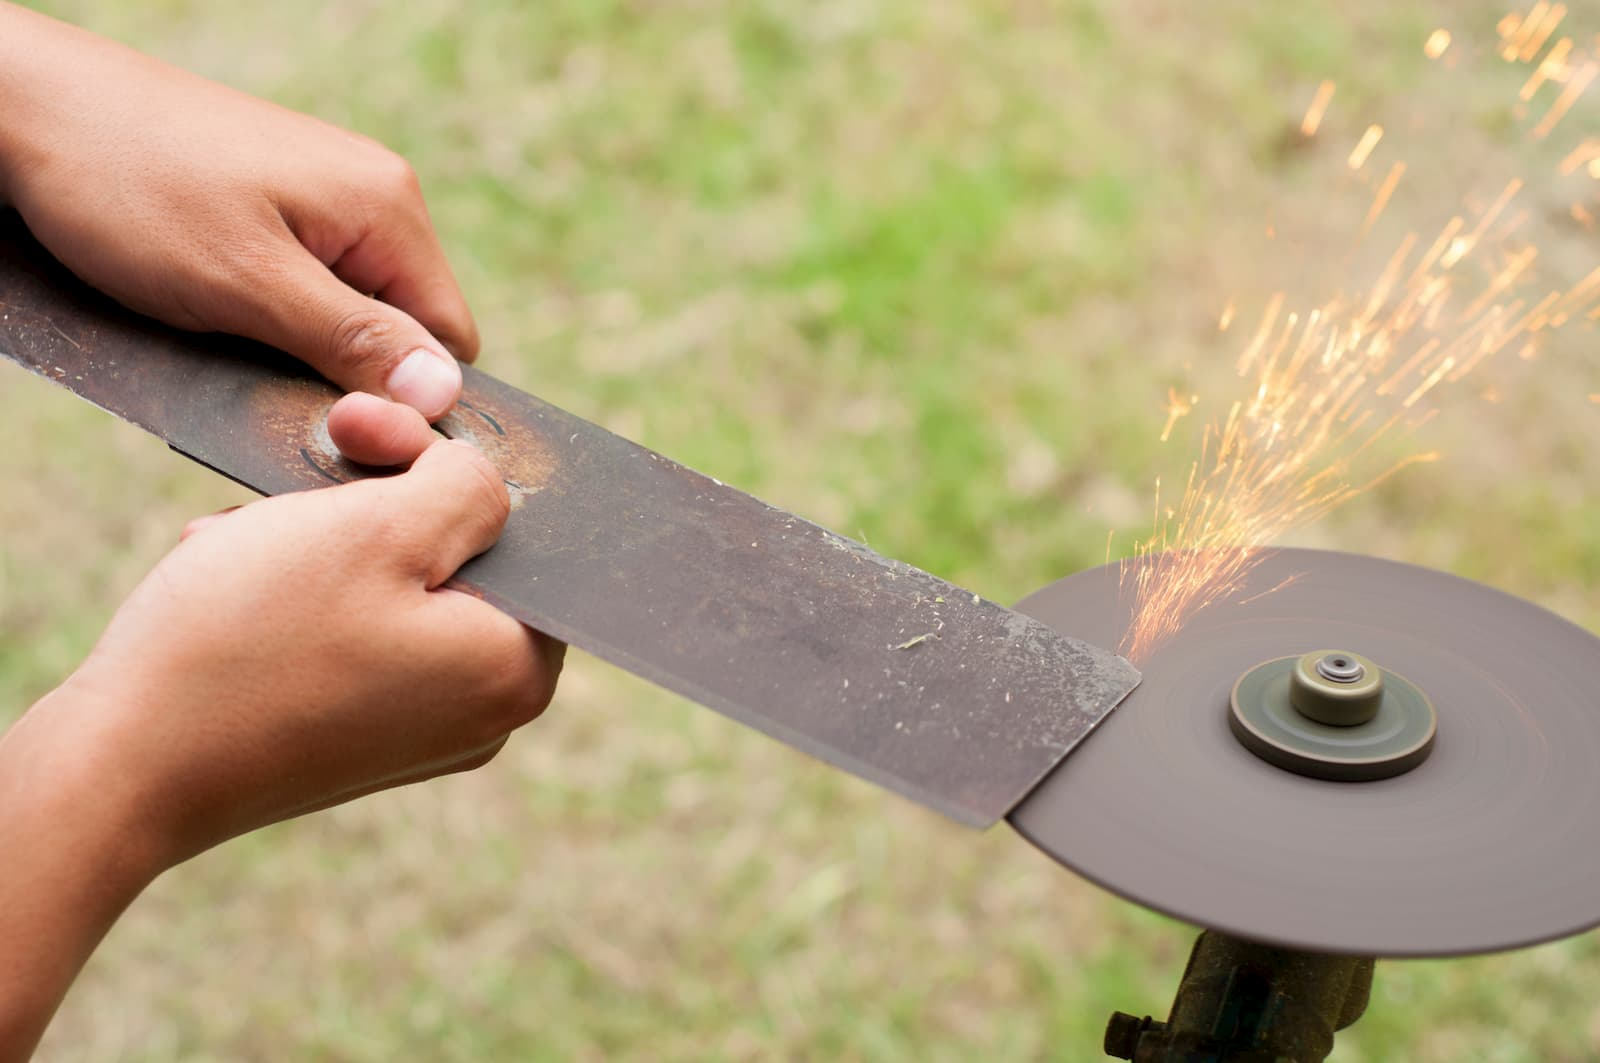 sharpening lawn mower blade with grinder